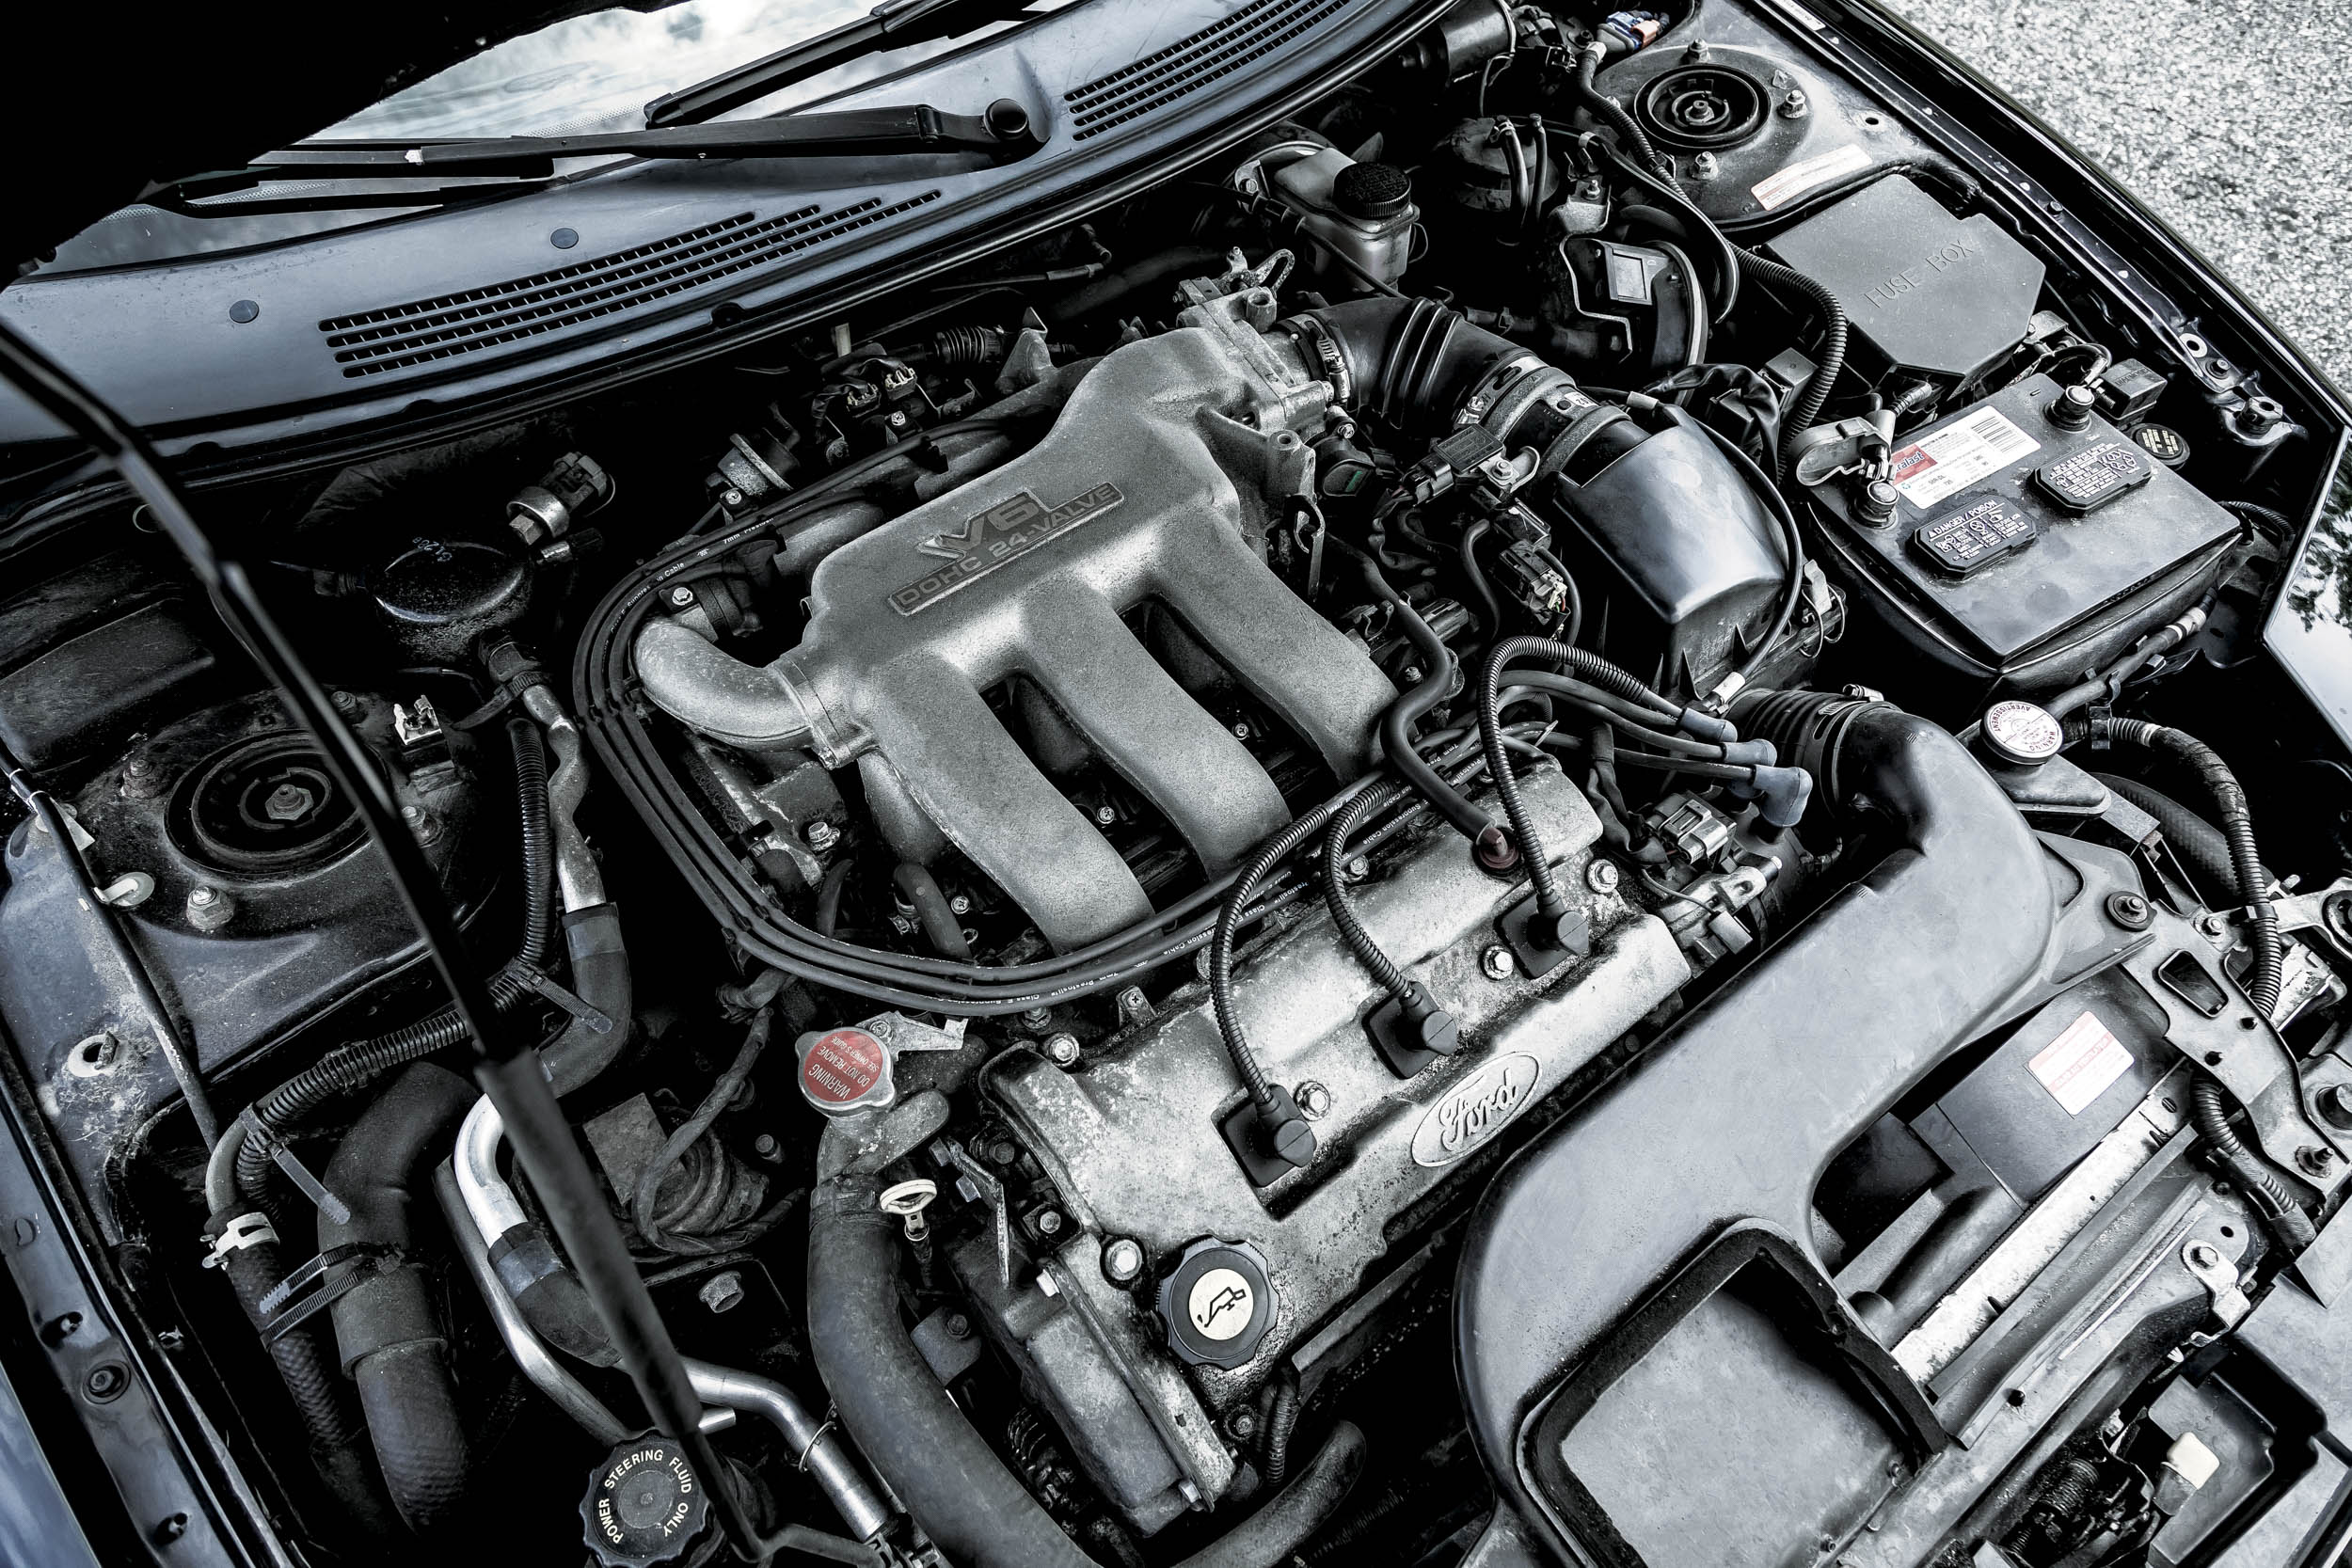 The Probe's DOHC 2.5-liter V-6 with an aluminum block and heads is a rev-happy gem. It makes its full 164 horsepower at 5600 rpm, with a redline of 7000 rpm.